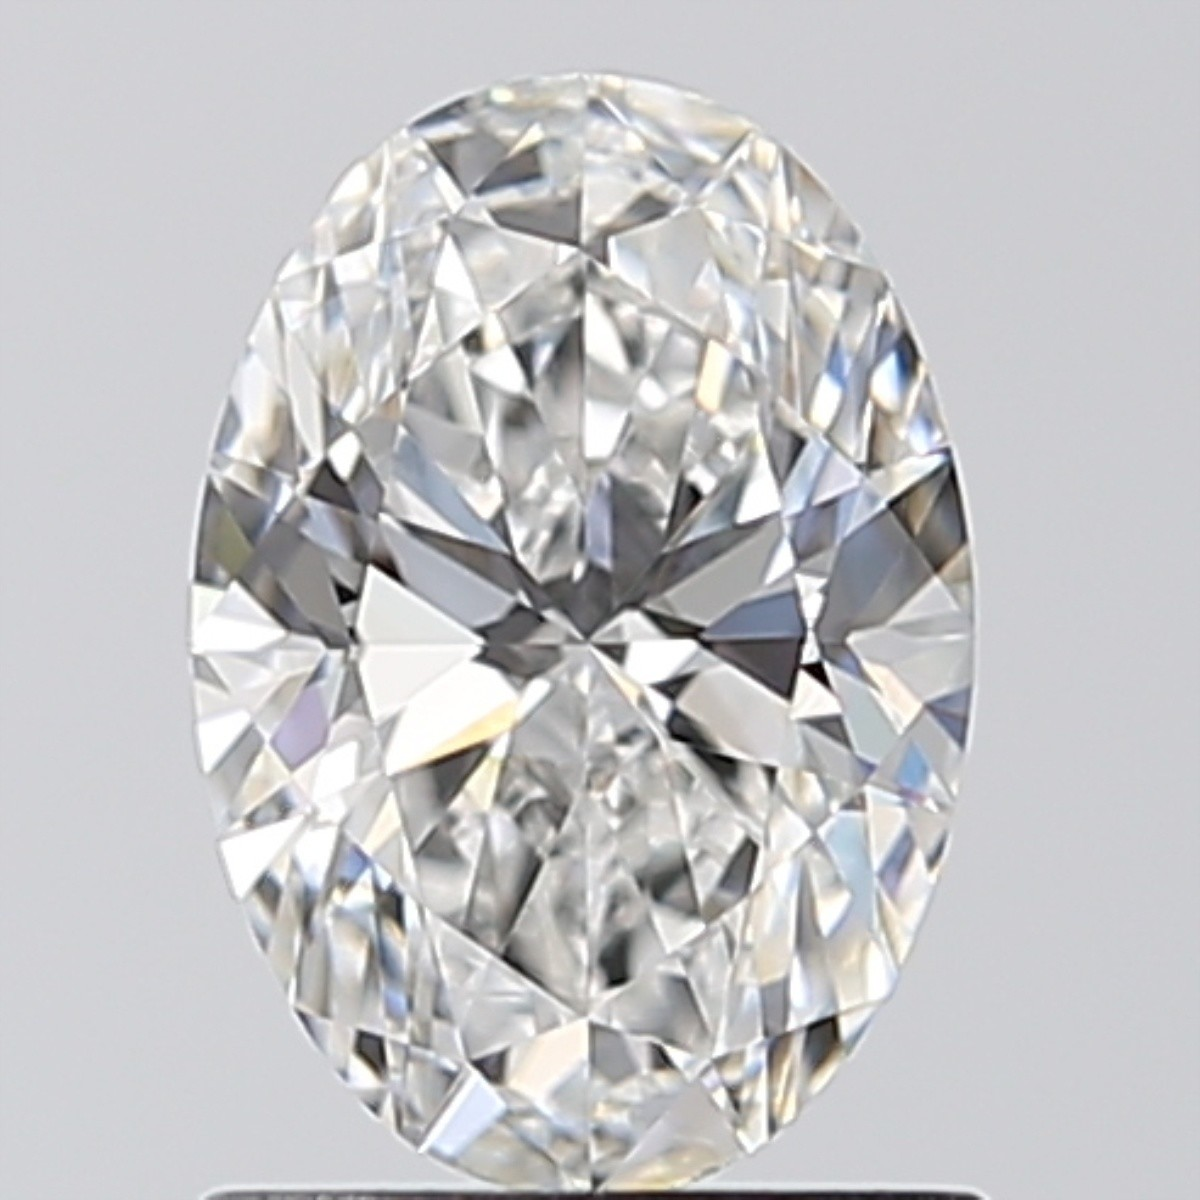 1.01 Carat Oval Diamond (E/VVS2)